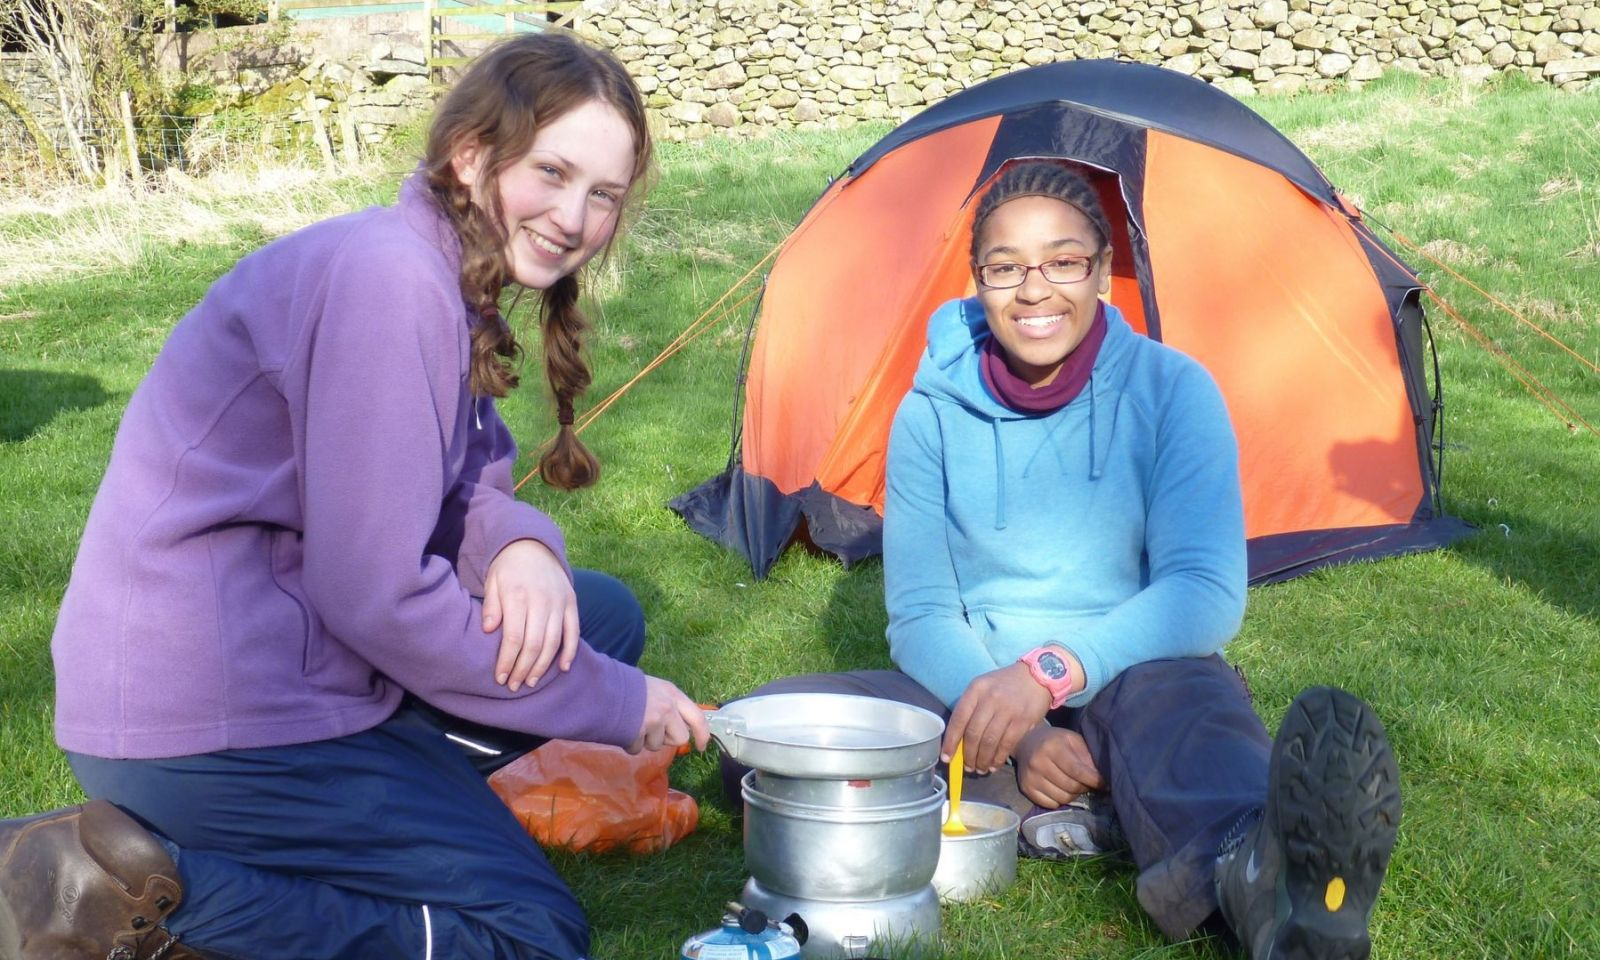 2 girls cooking on a stove and smiling on their DofE expedition.